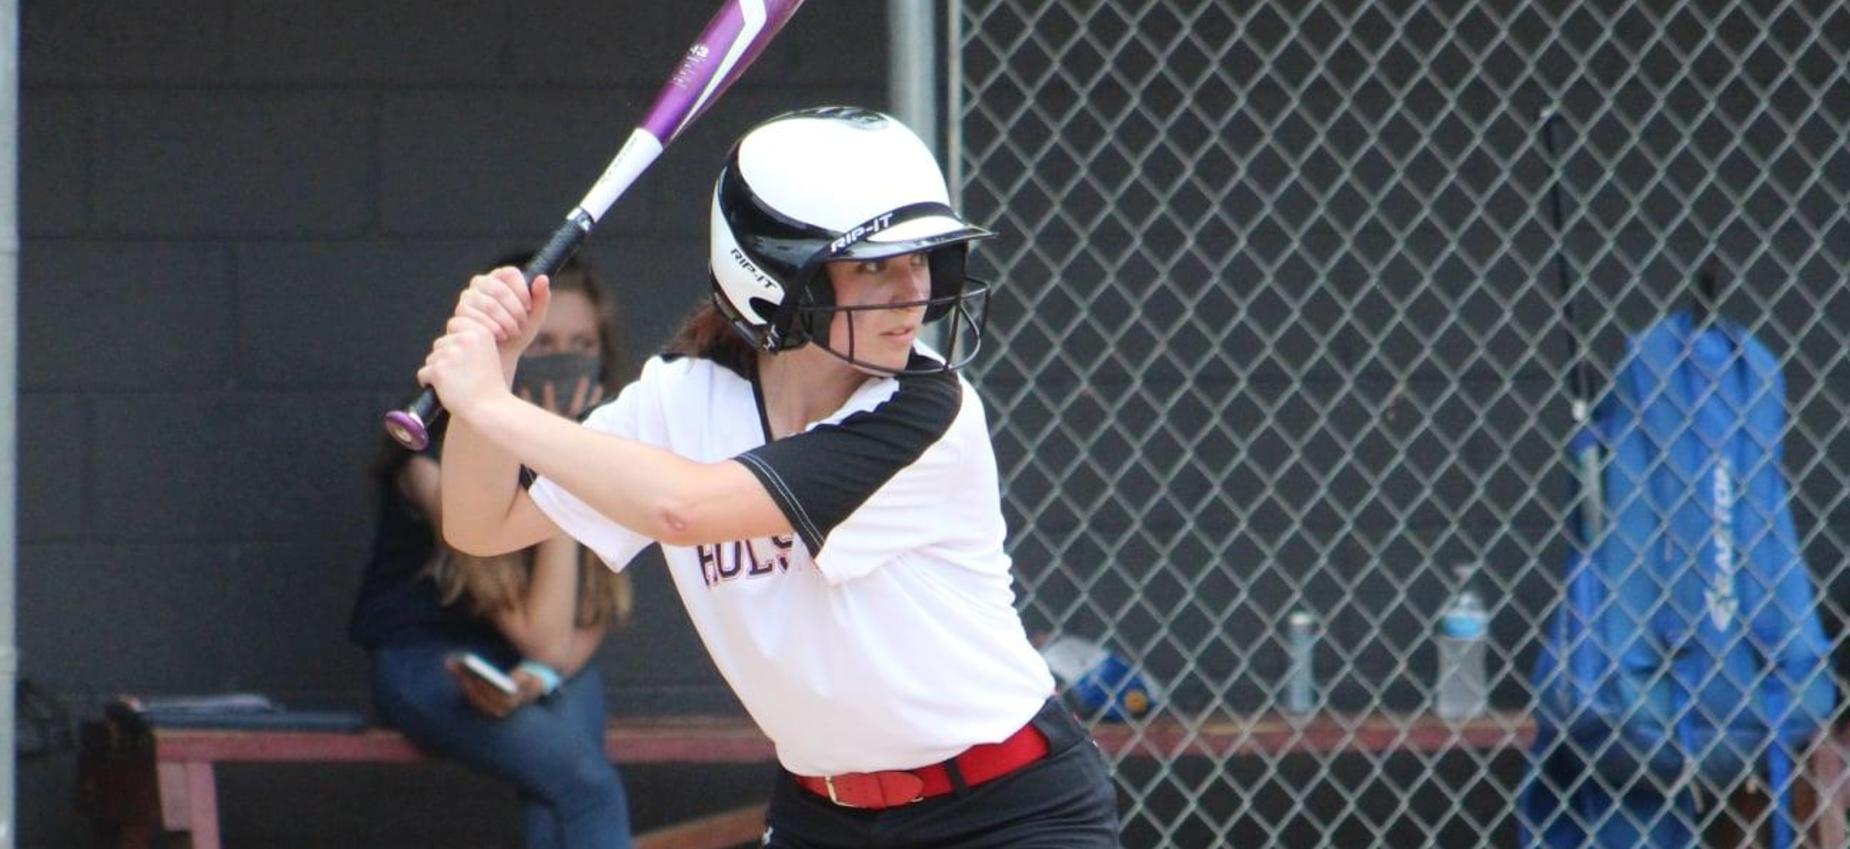 A softball player prepares to hit the ball.